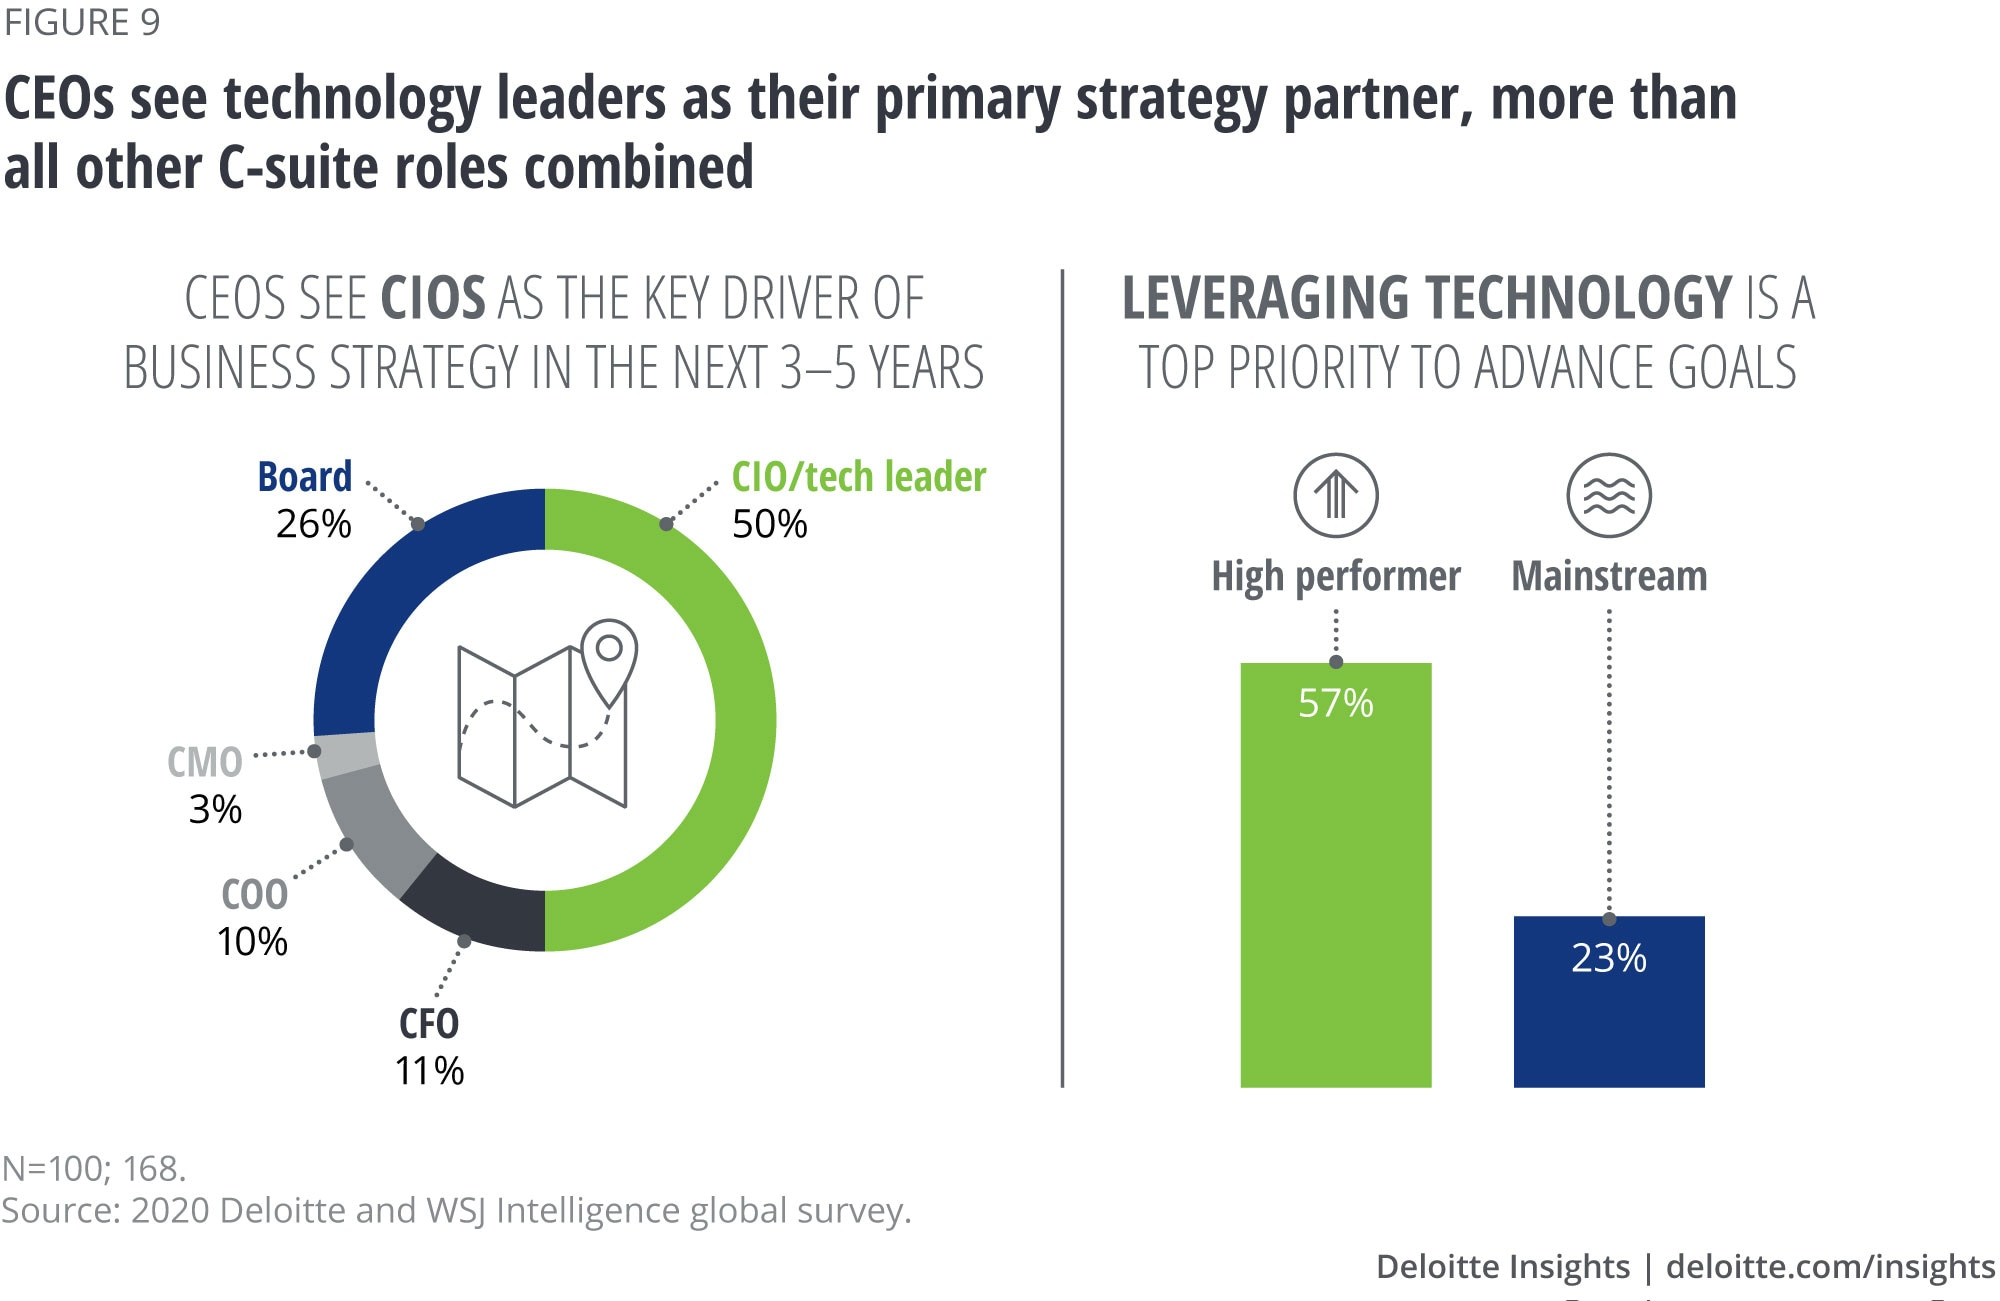 CEOs see technology leaders as their primary strategy partner, more than all other C-suite roles combined